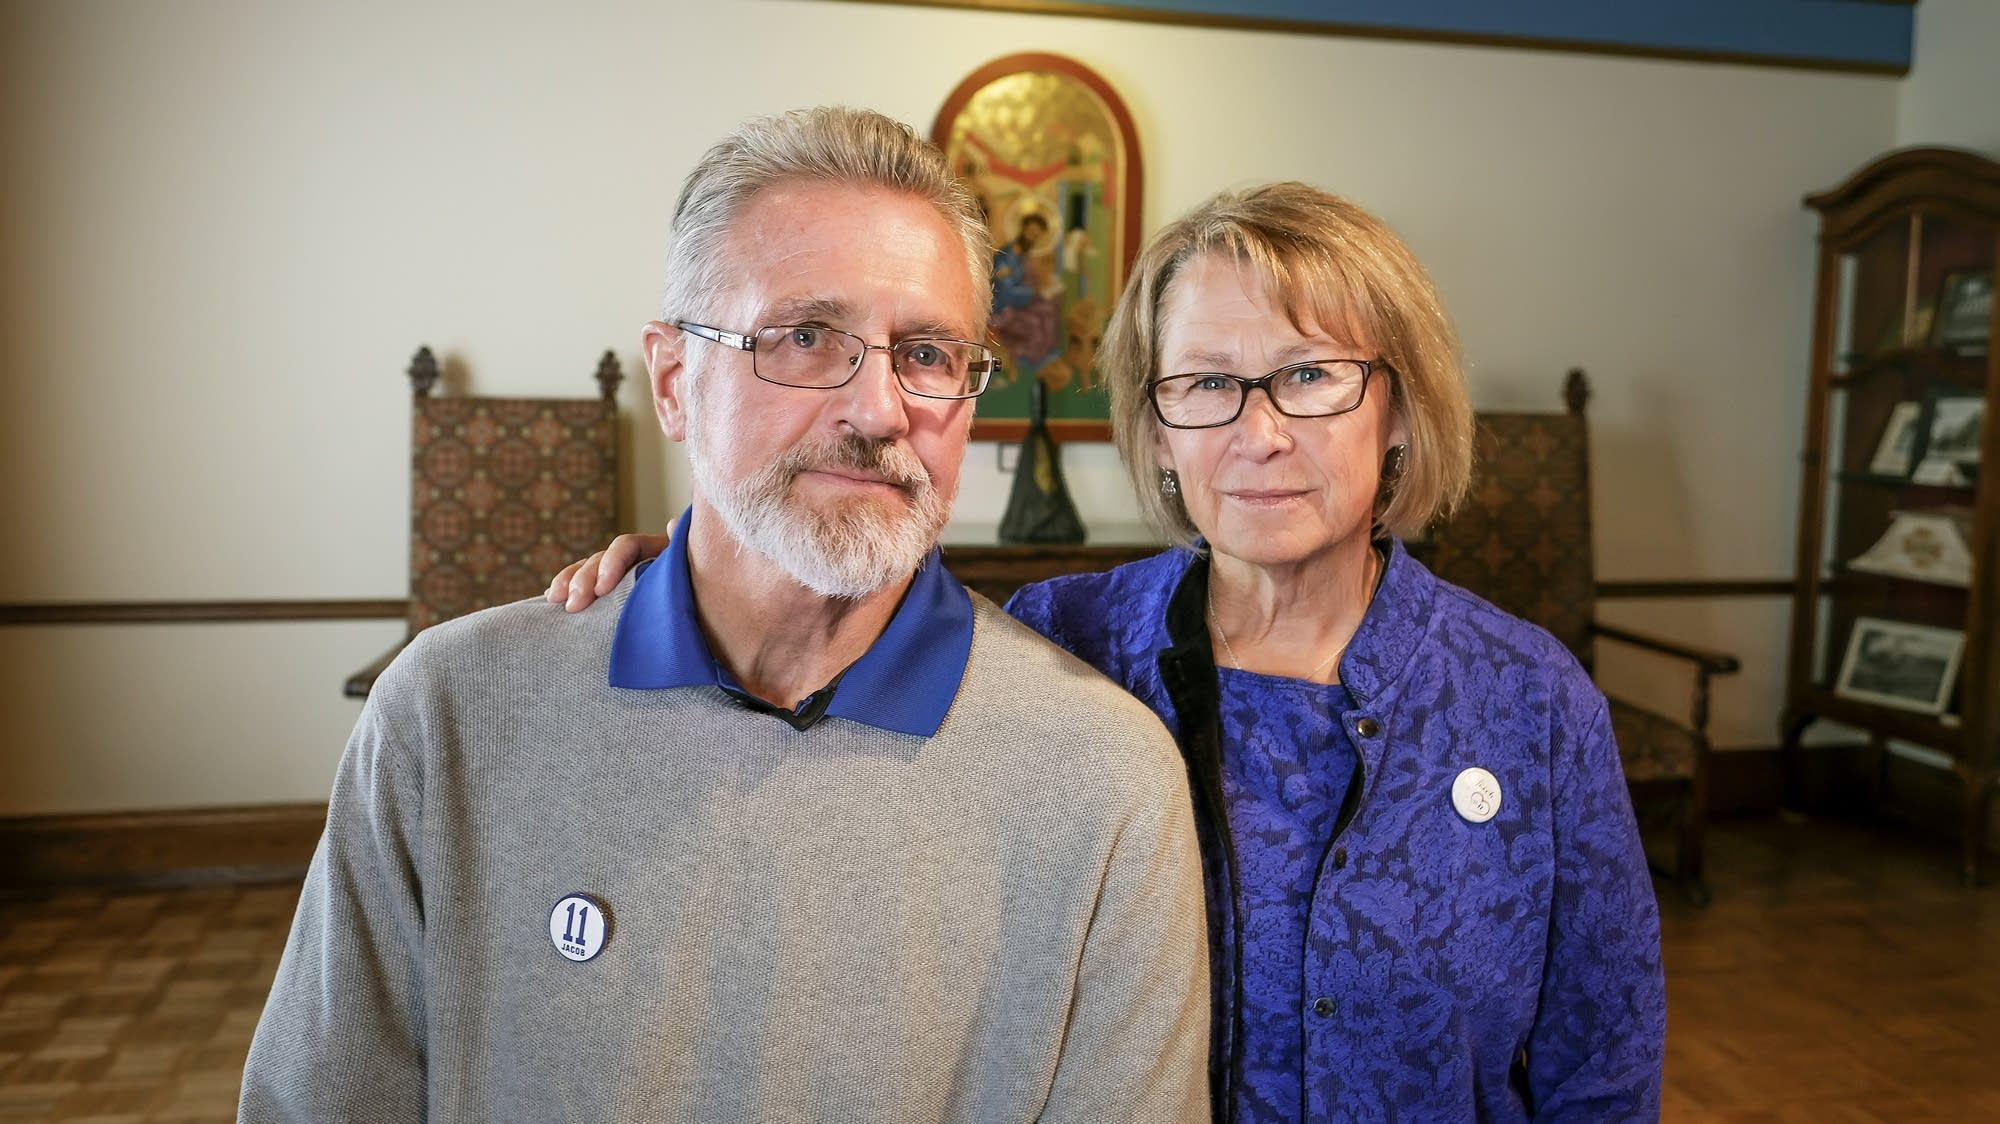 Jerry and Patty Wetterling